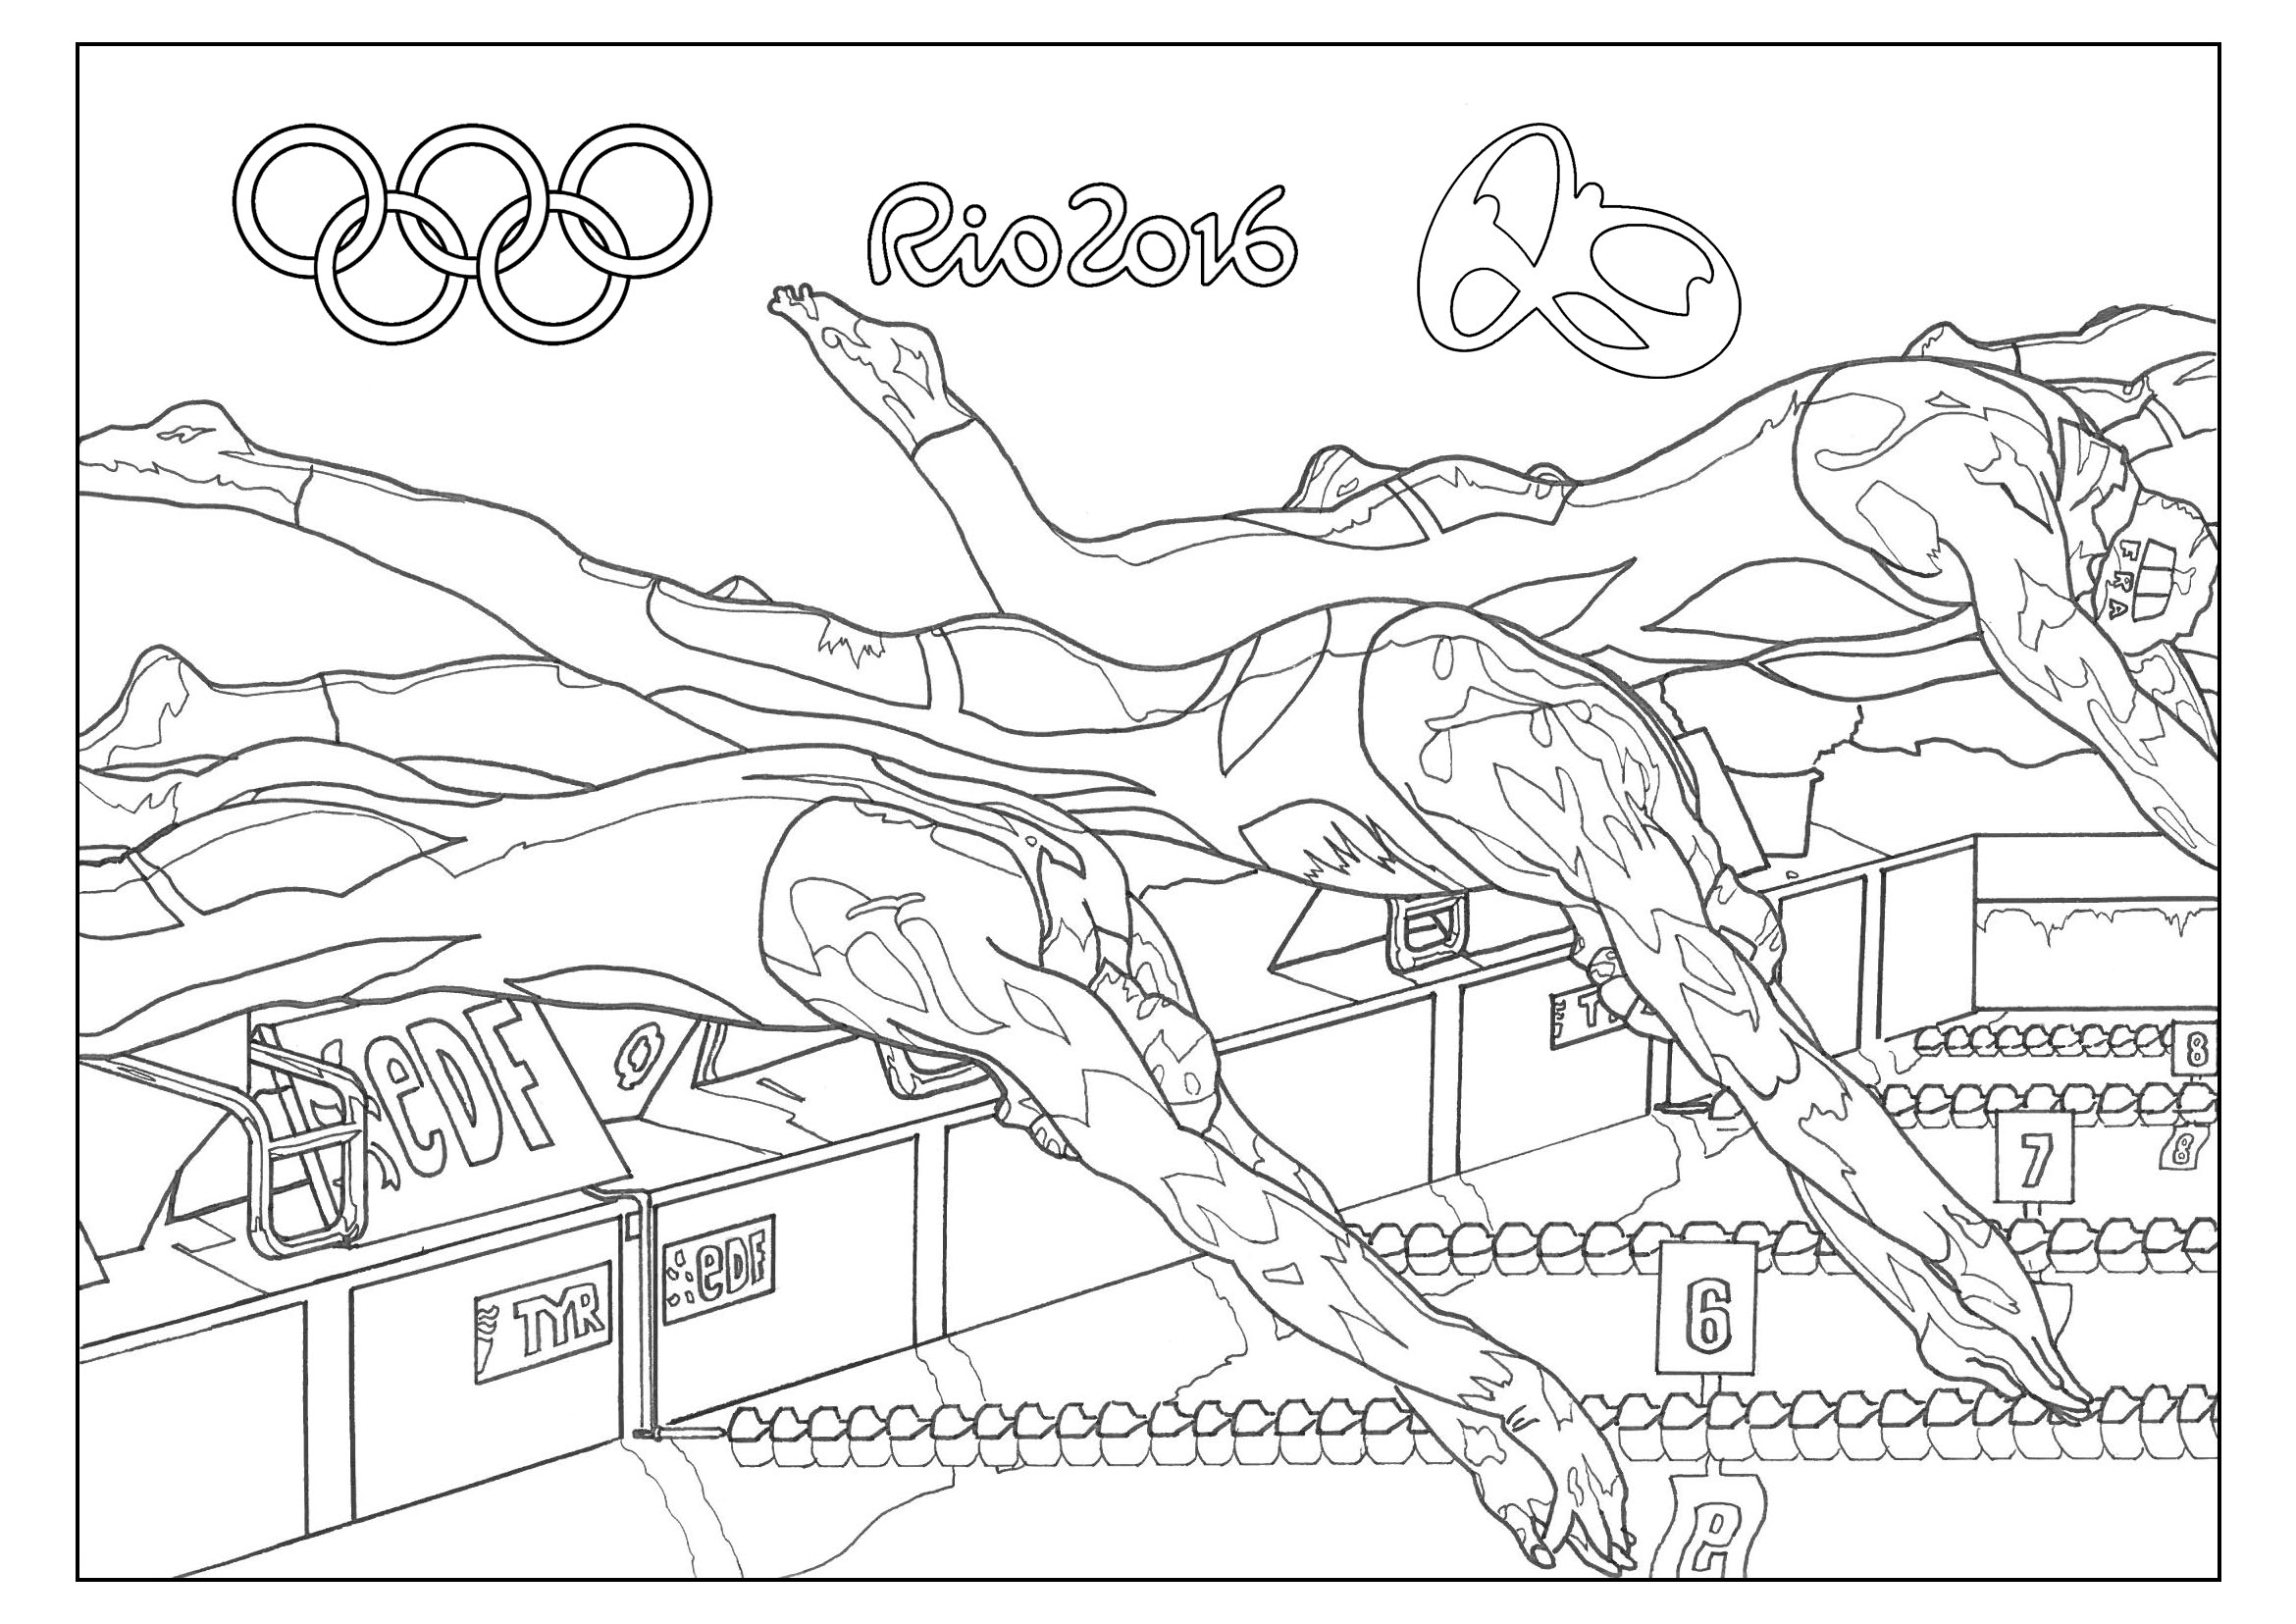 Coloring Page For The 2016 Rio Olympic Games Swimming